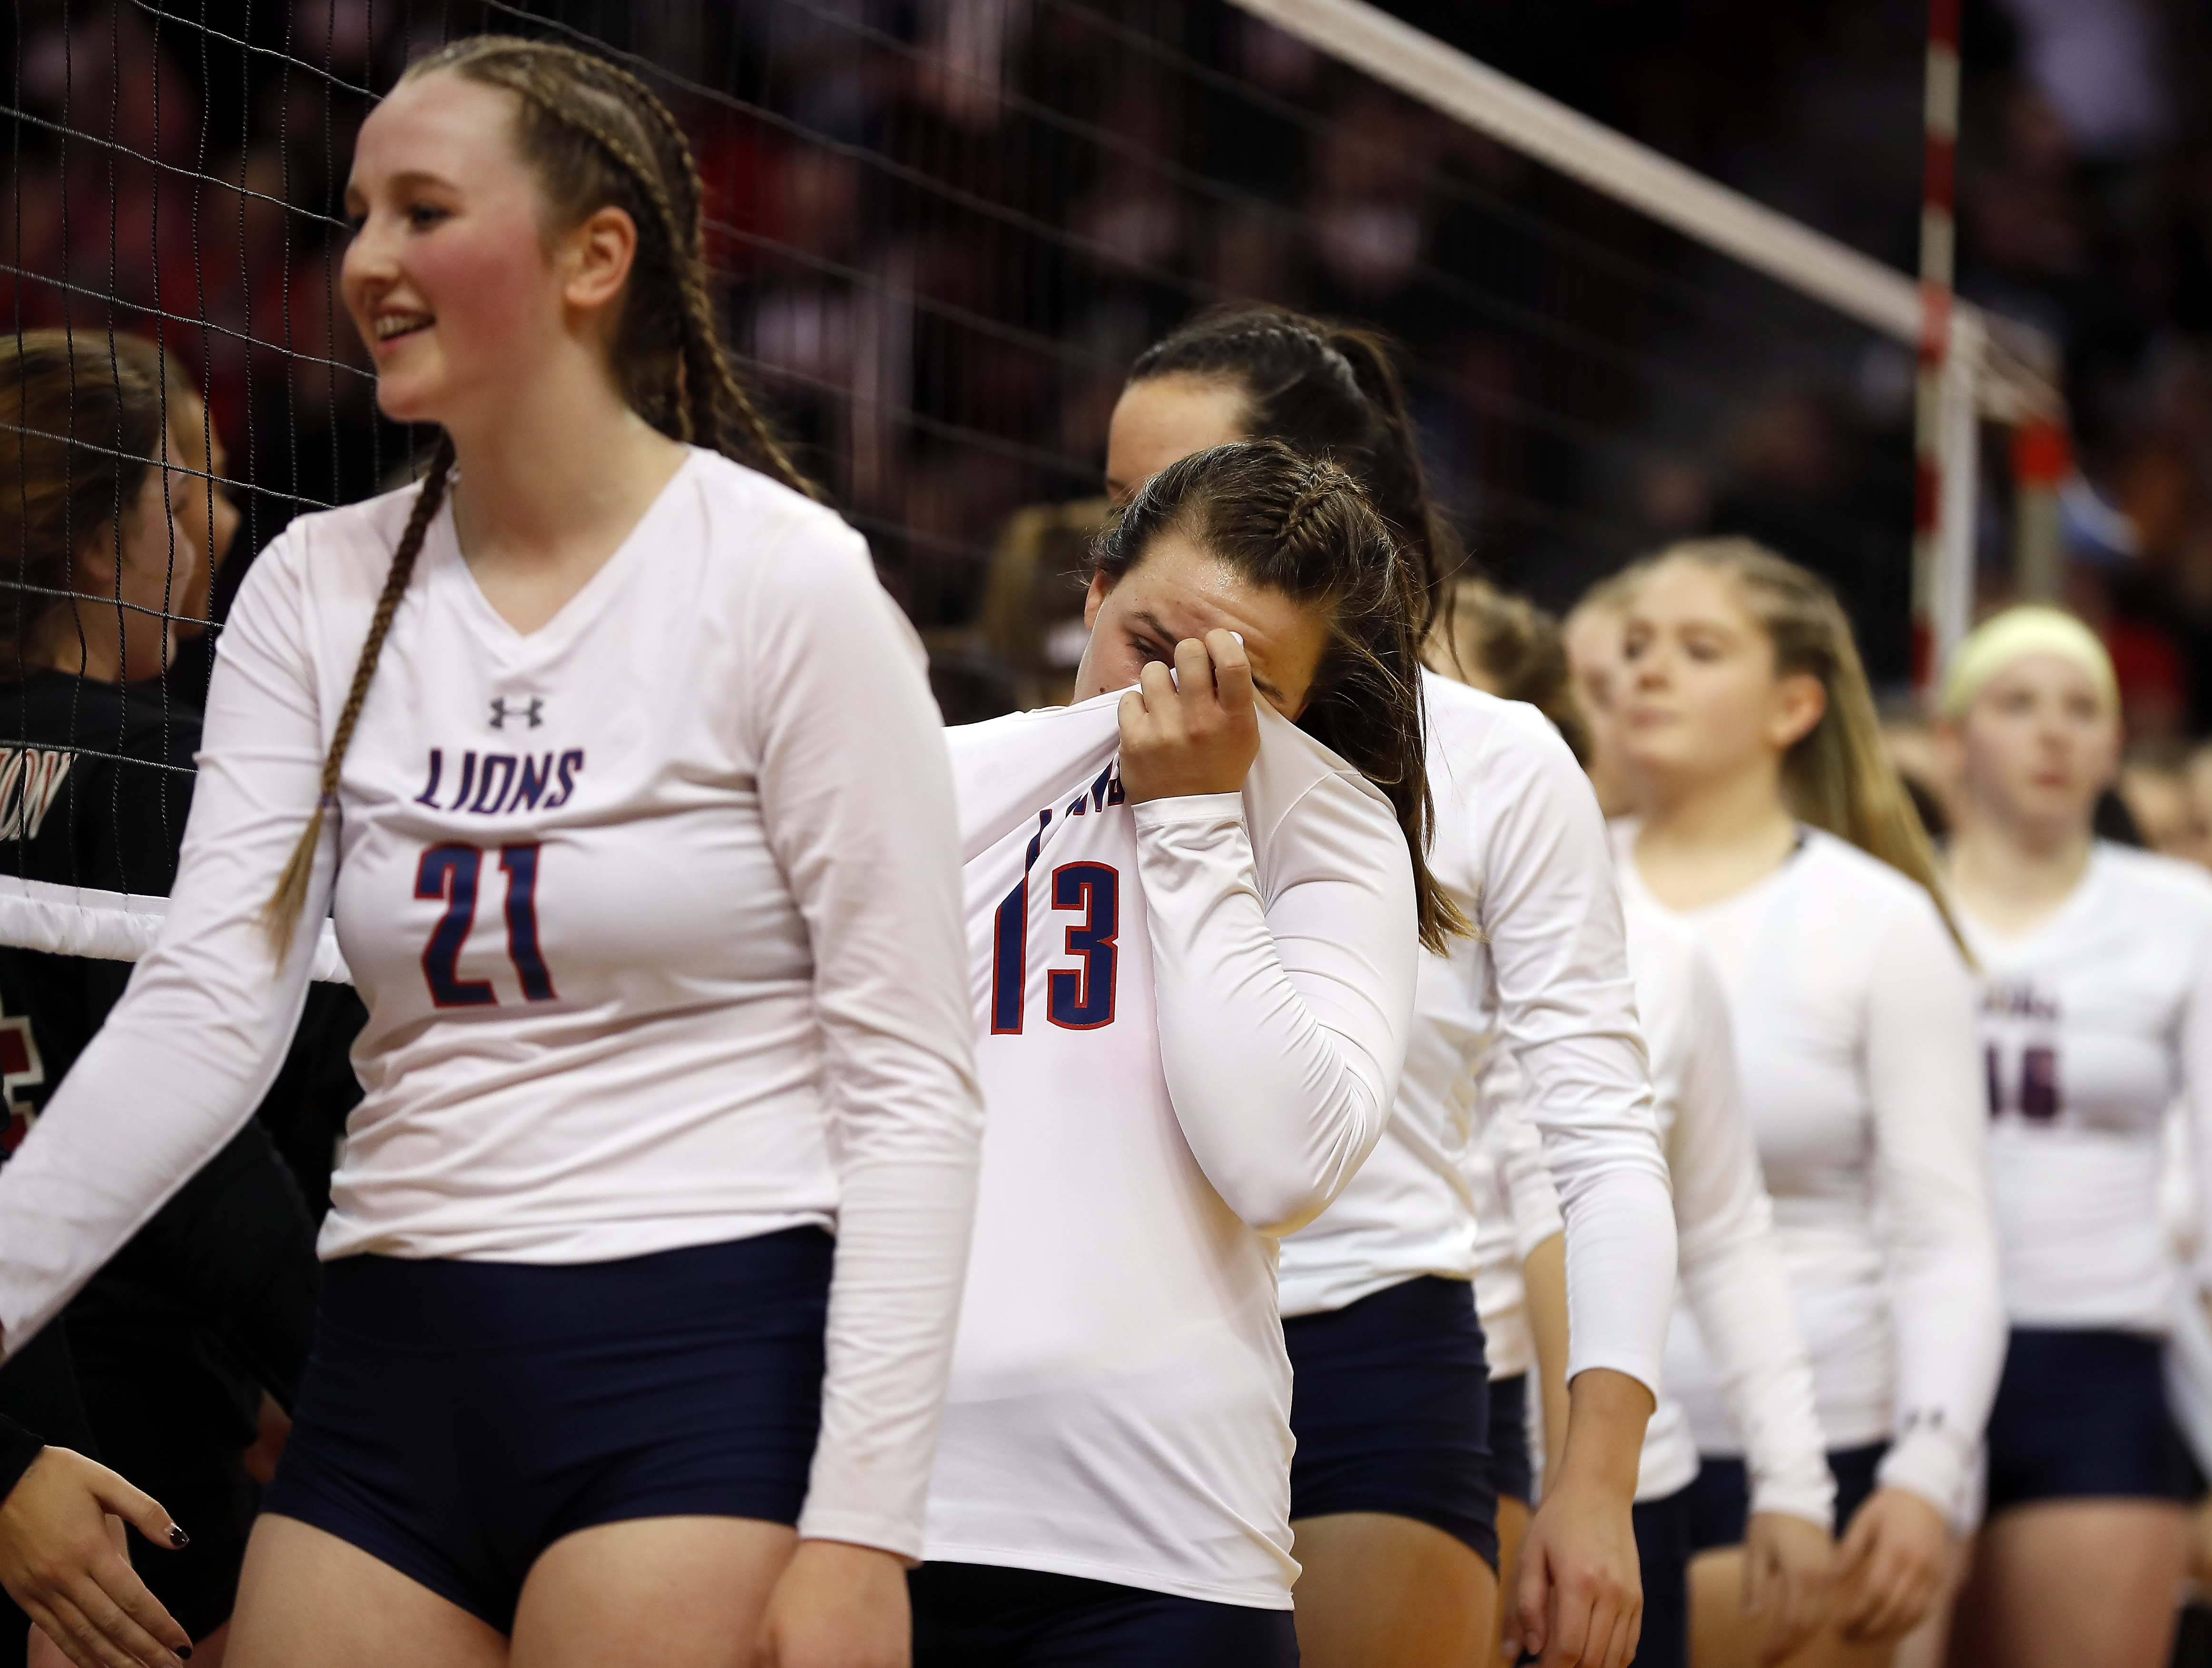 Images: St. Viator vs. Resurrection, Class 3A volleyball semifinal